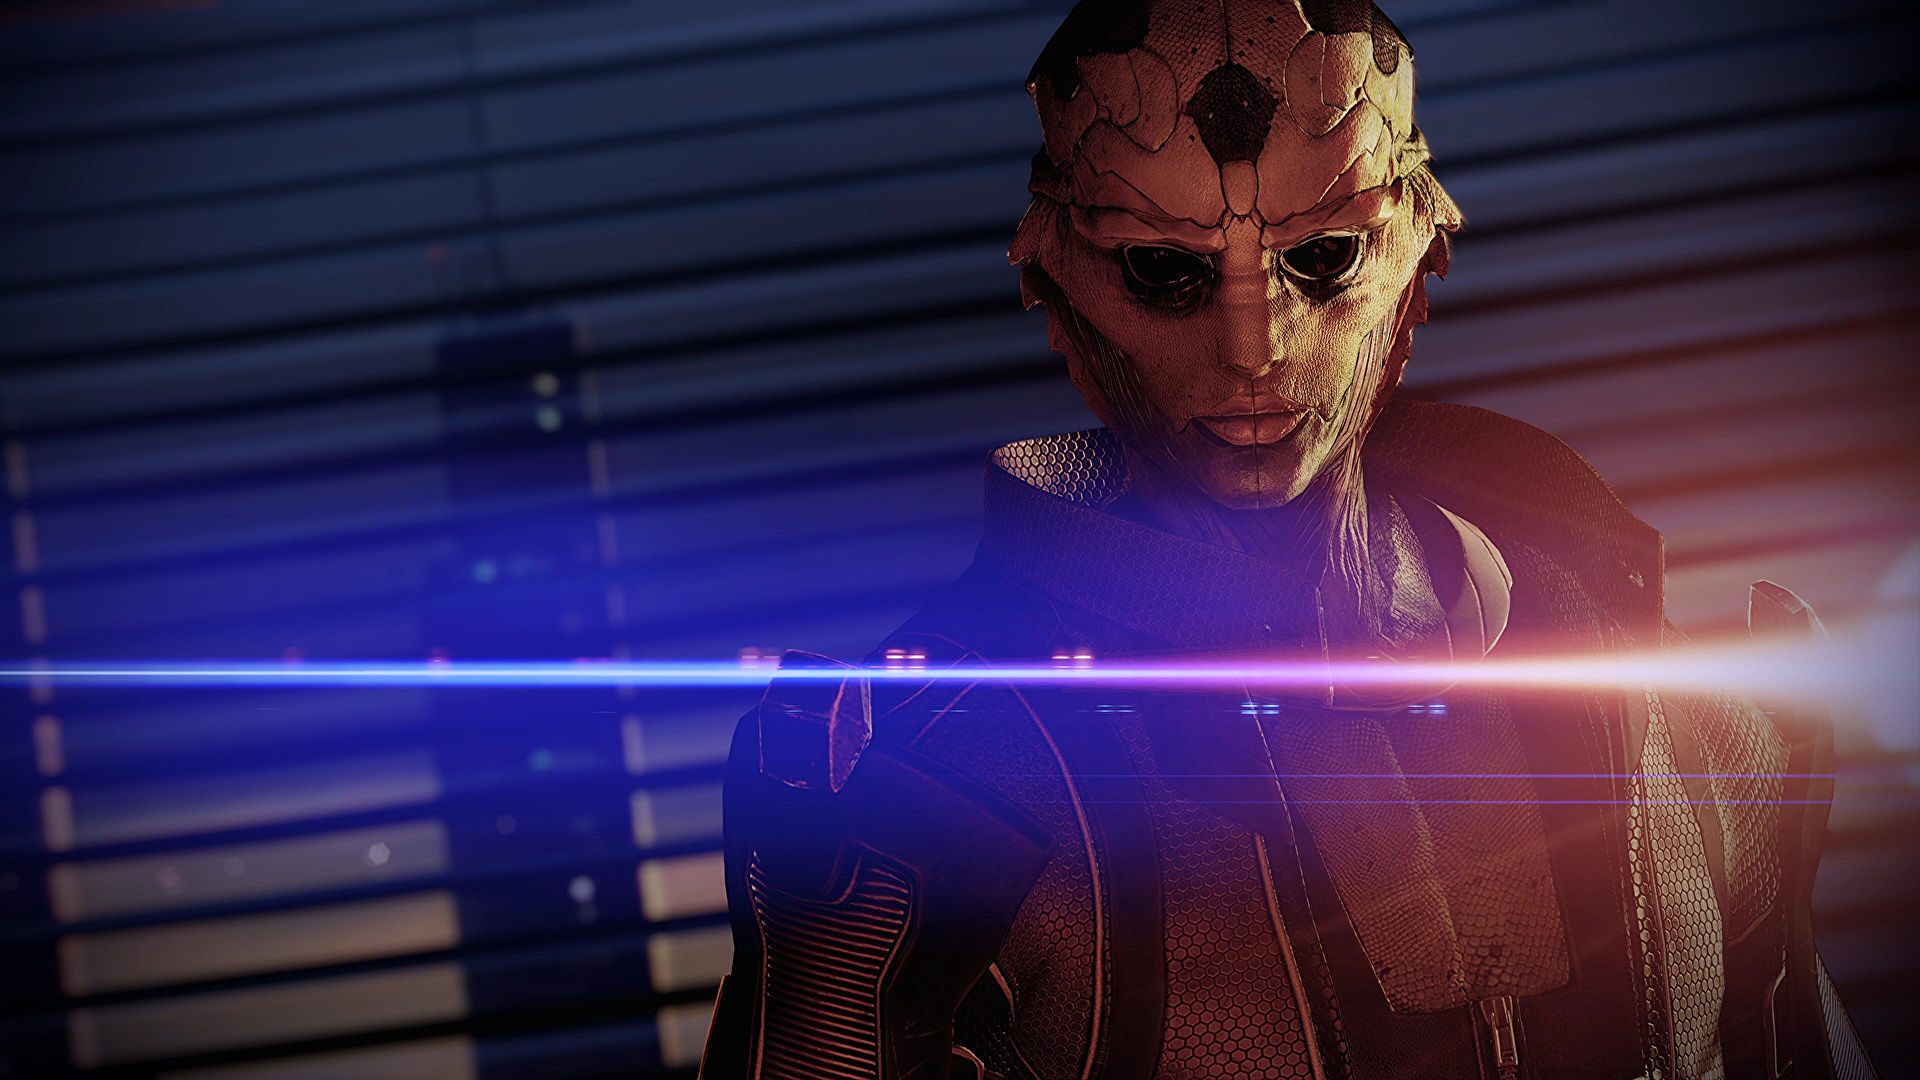 Mass Effect remaster is missing one DLC